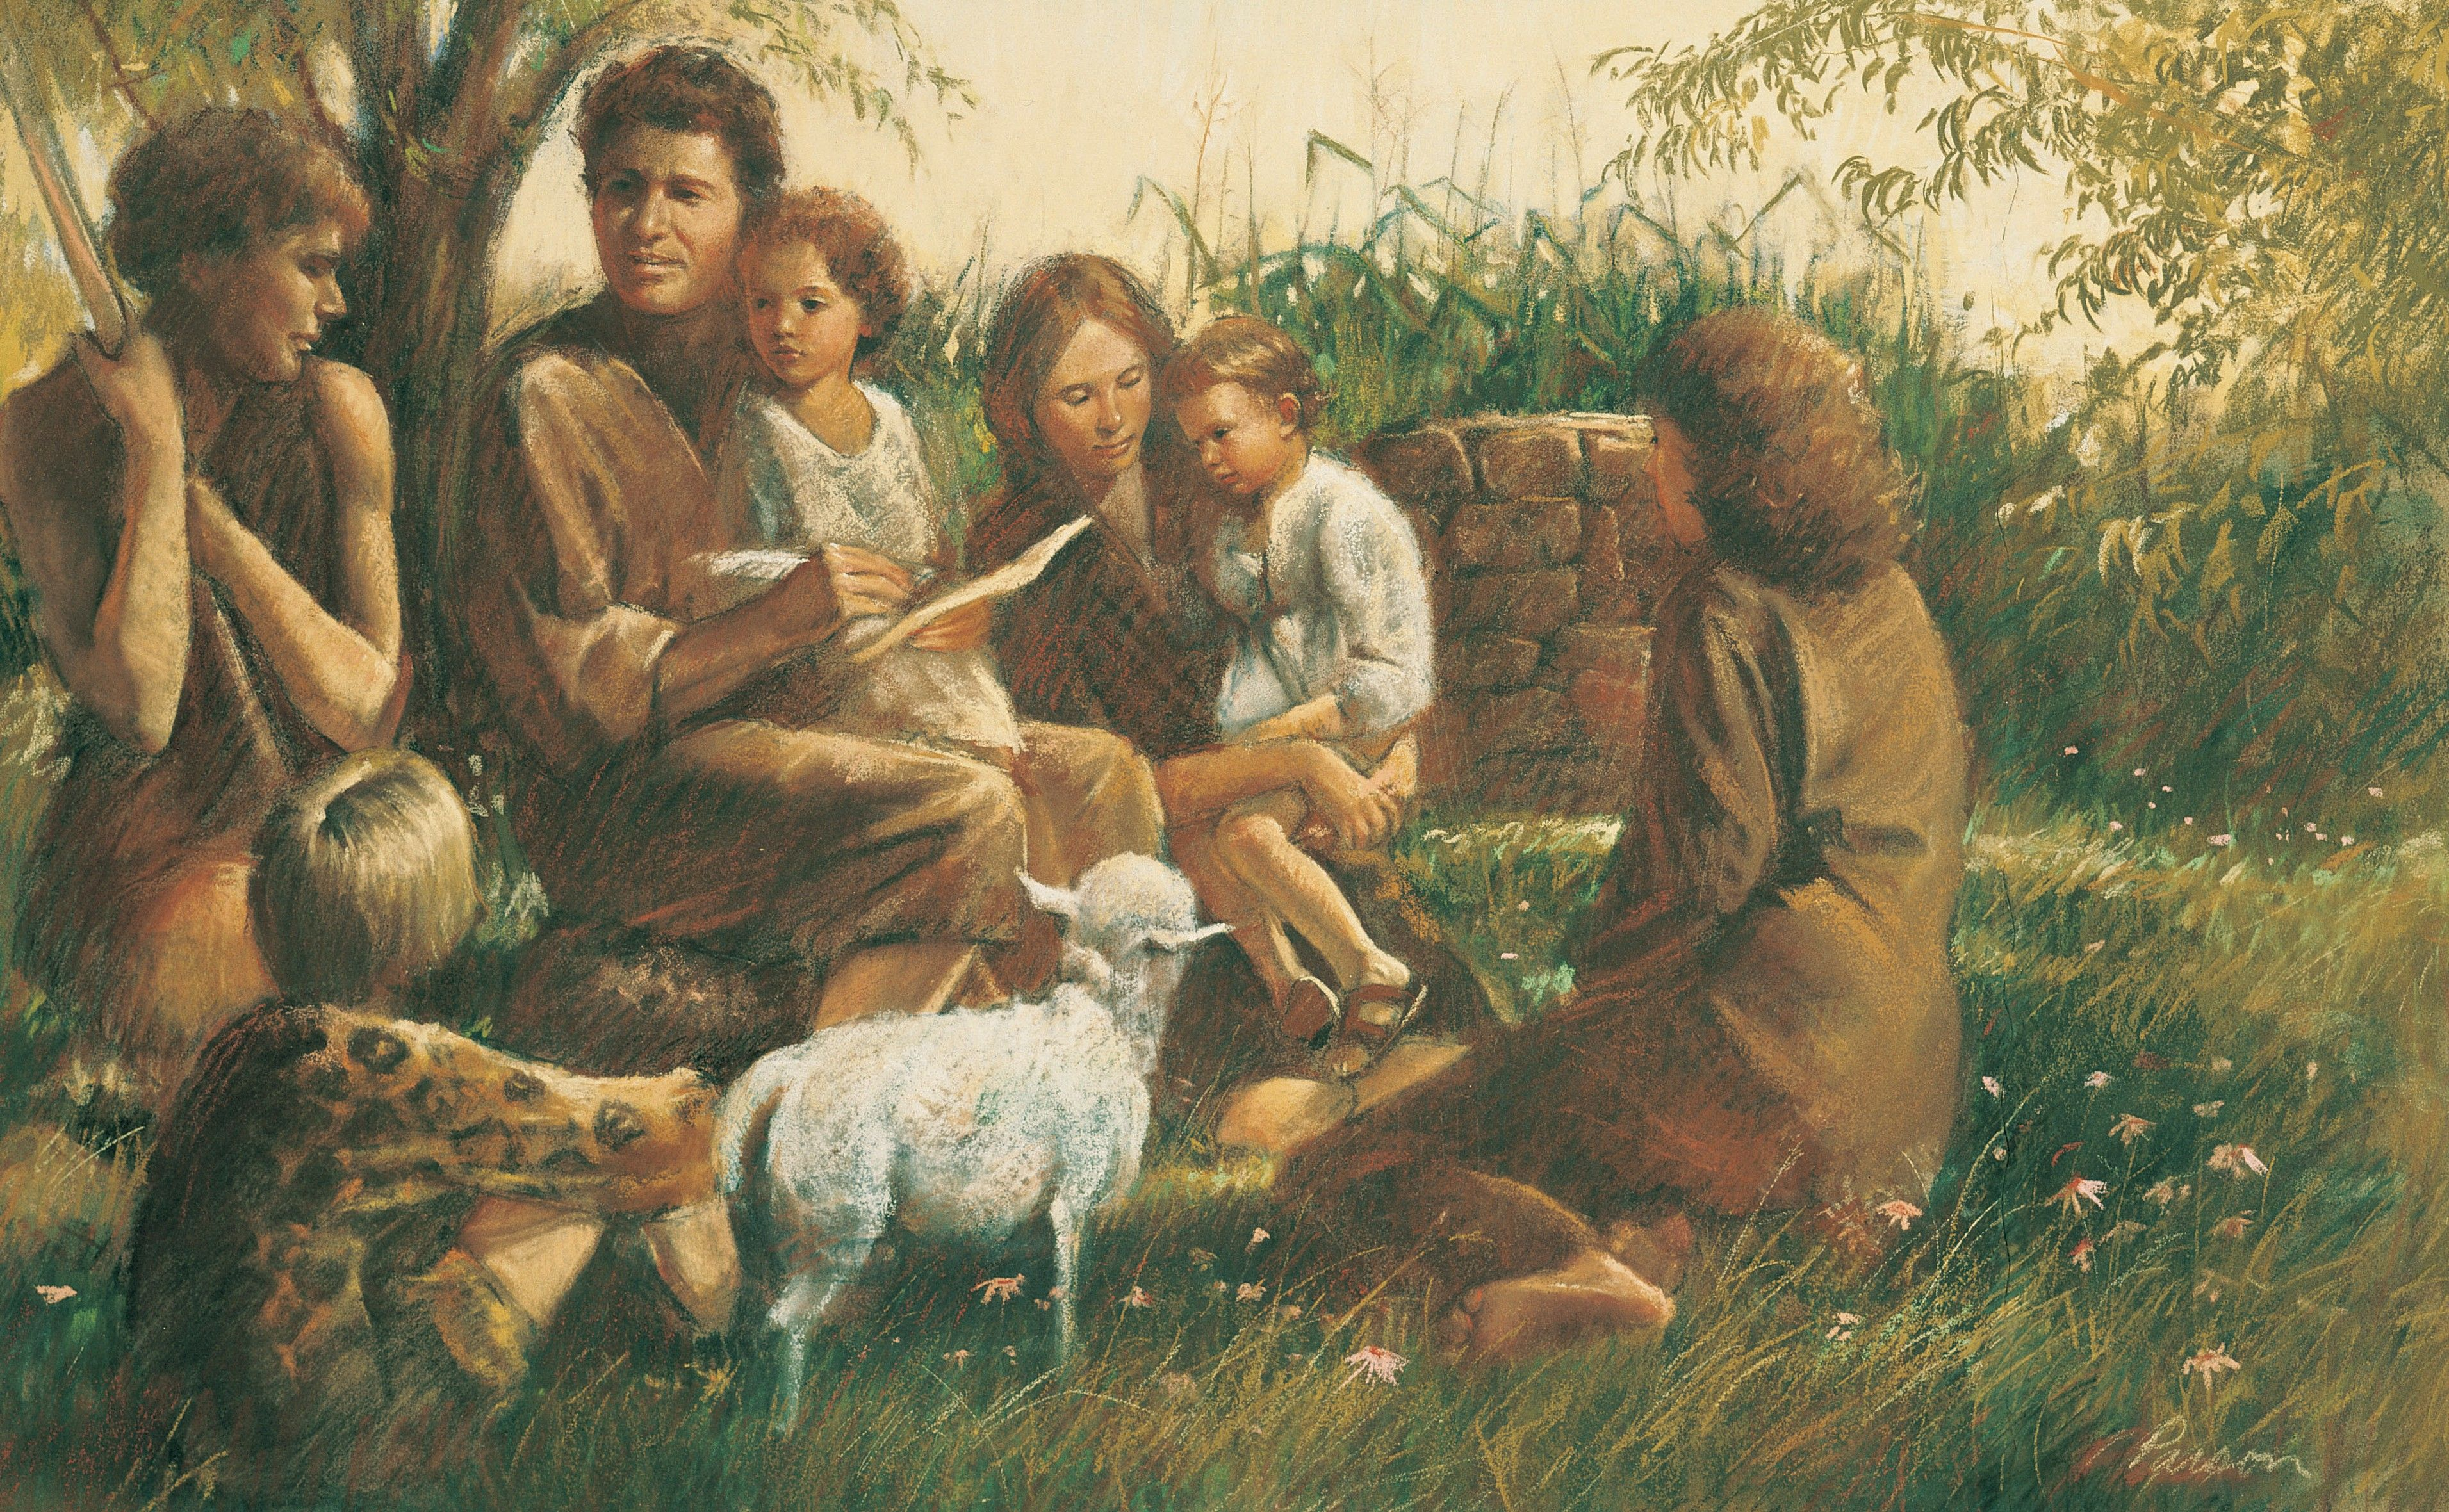 Adam and Eve Teaching Their Children, by Del Parson; GAK 119; GAB 5; Primary manual 1-34; Primary manual 3-05; Moses 5:12